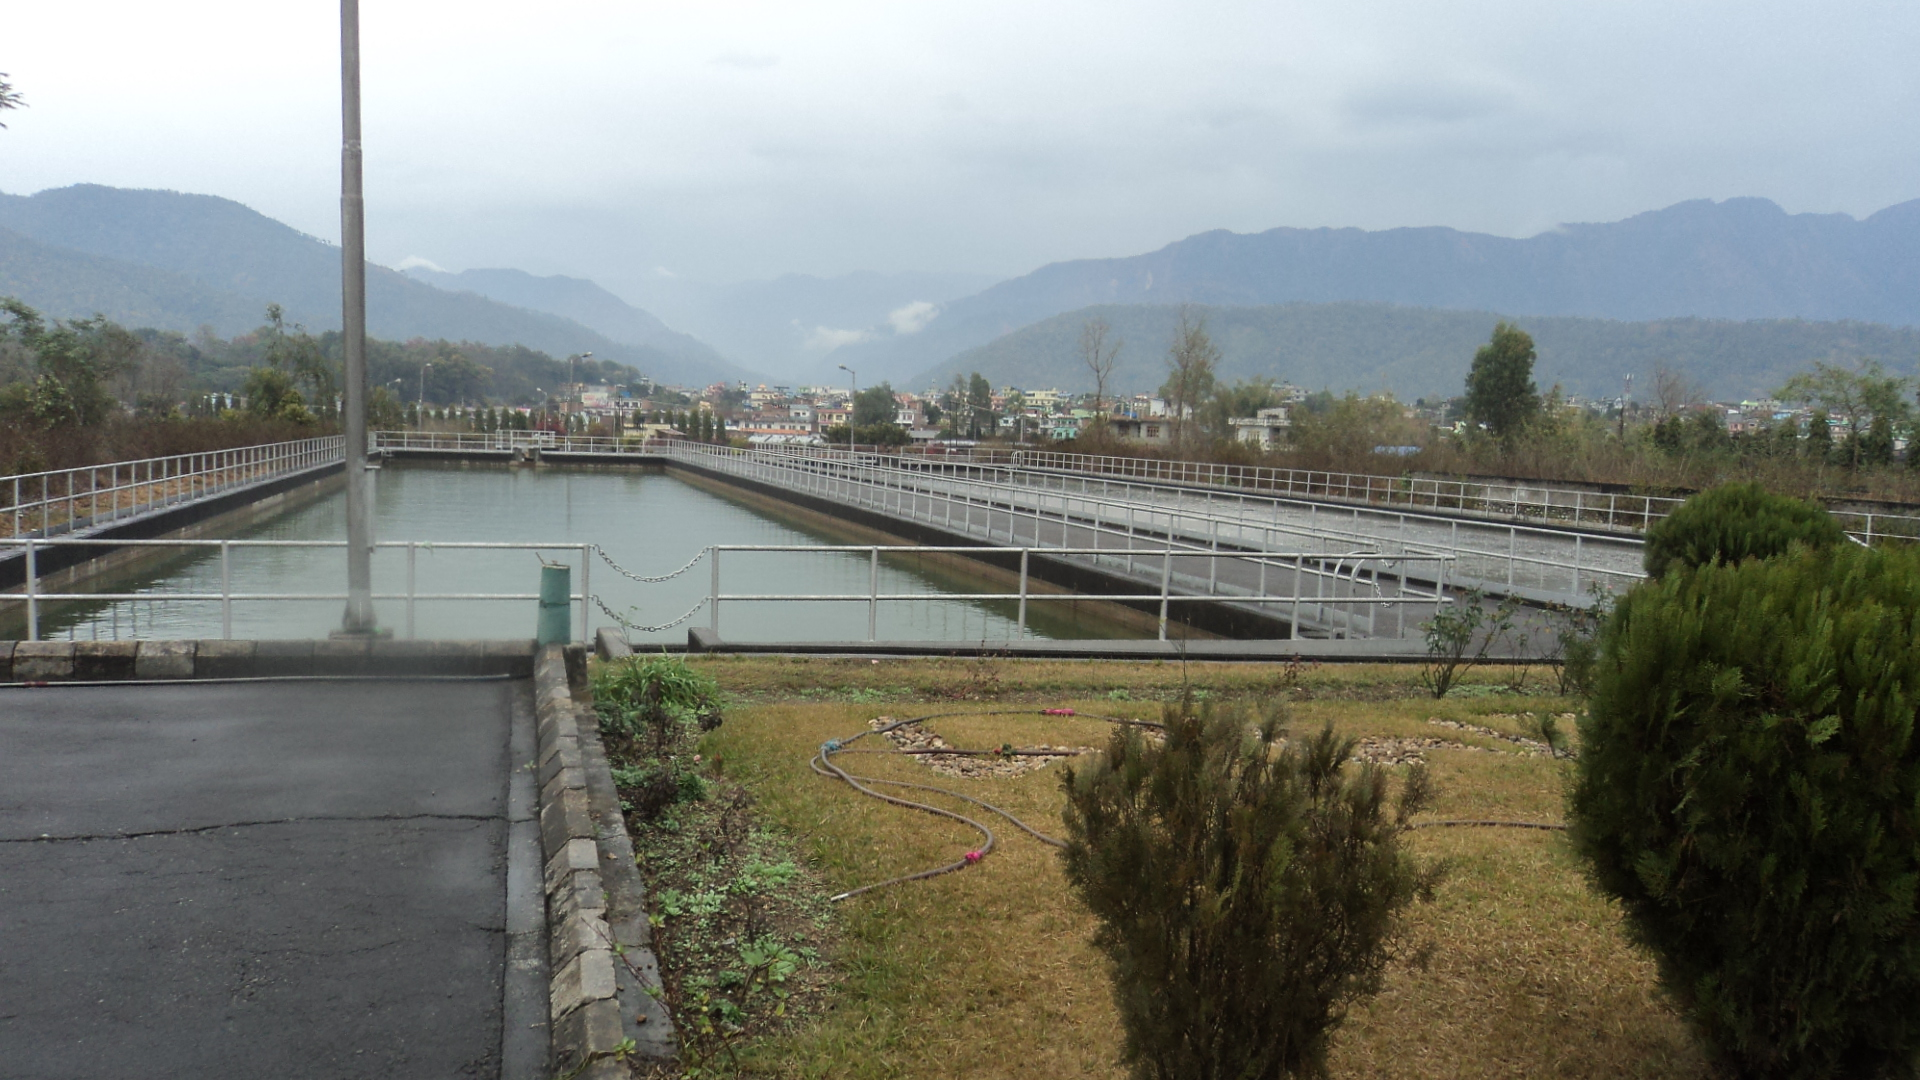 A Visit To Wastewater Treatment Plant - Hetauda